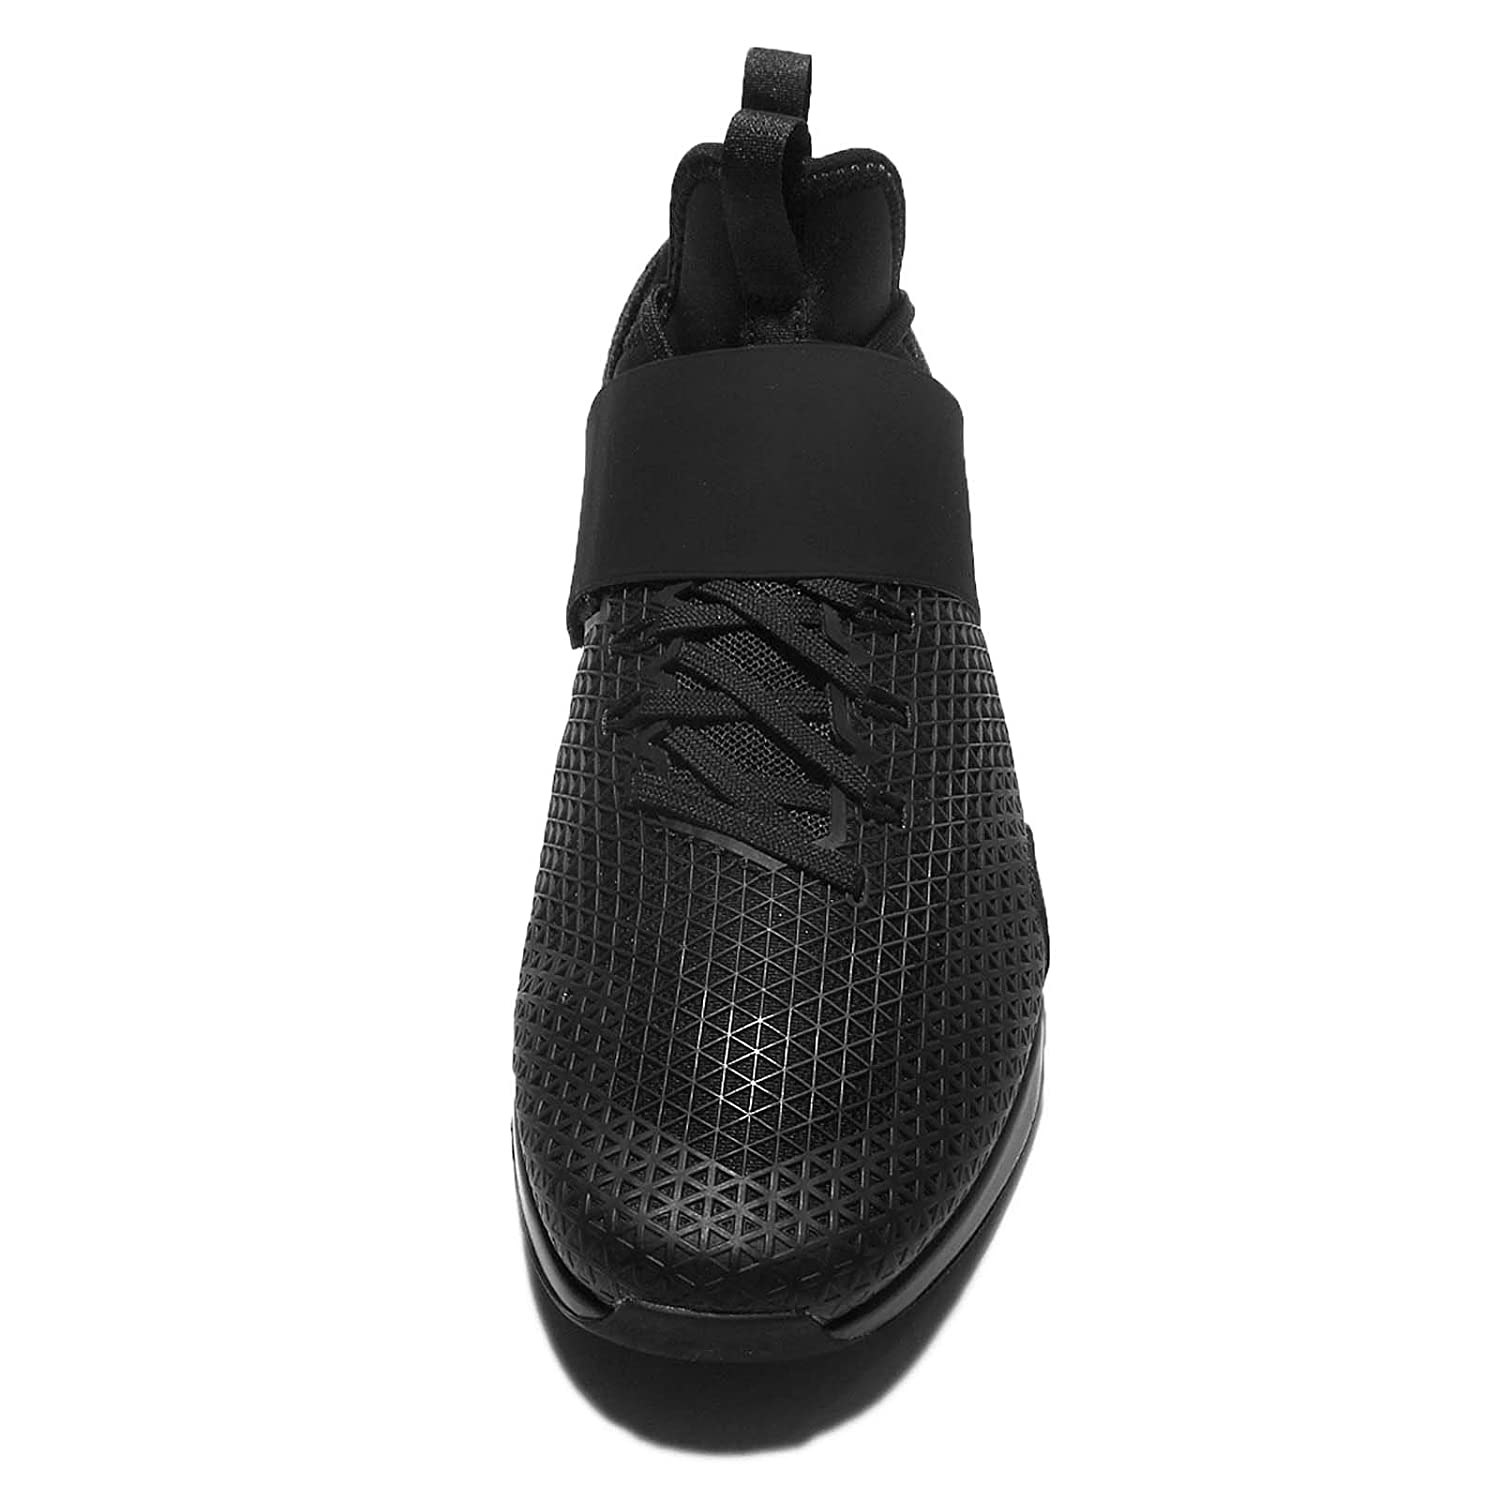 NIKE Women's Air Zoom Strong Running Shoes B01DX7LED8 9.5 B(M) US|Black/Anthracite